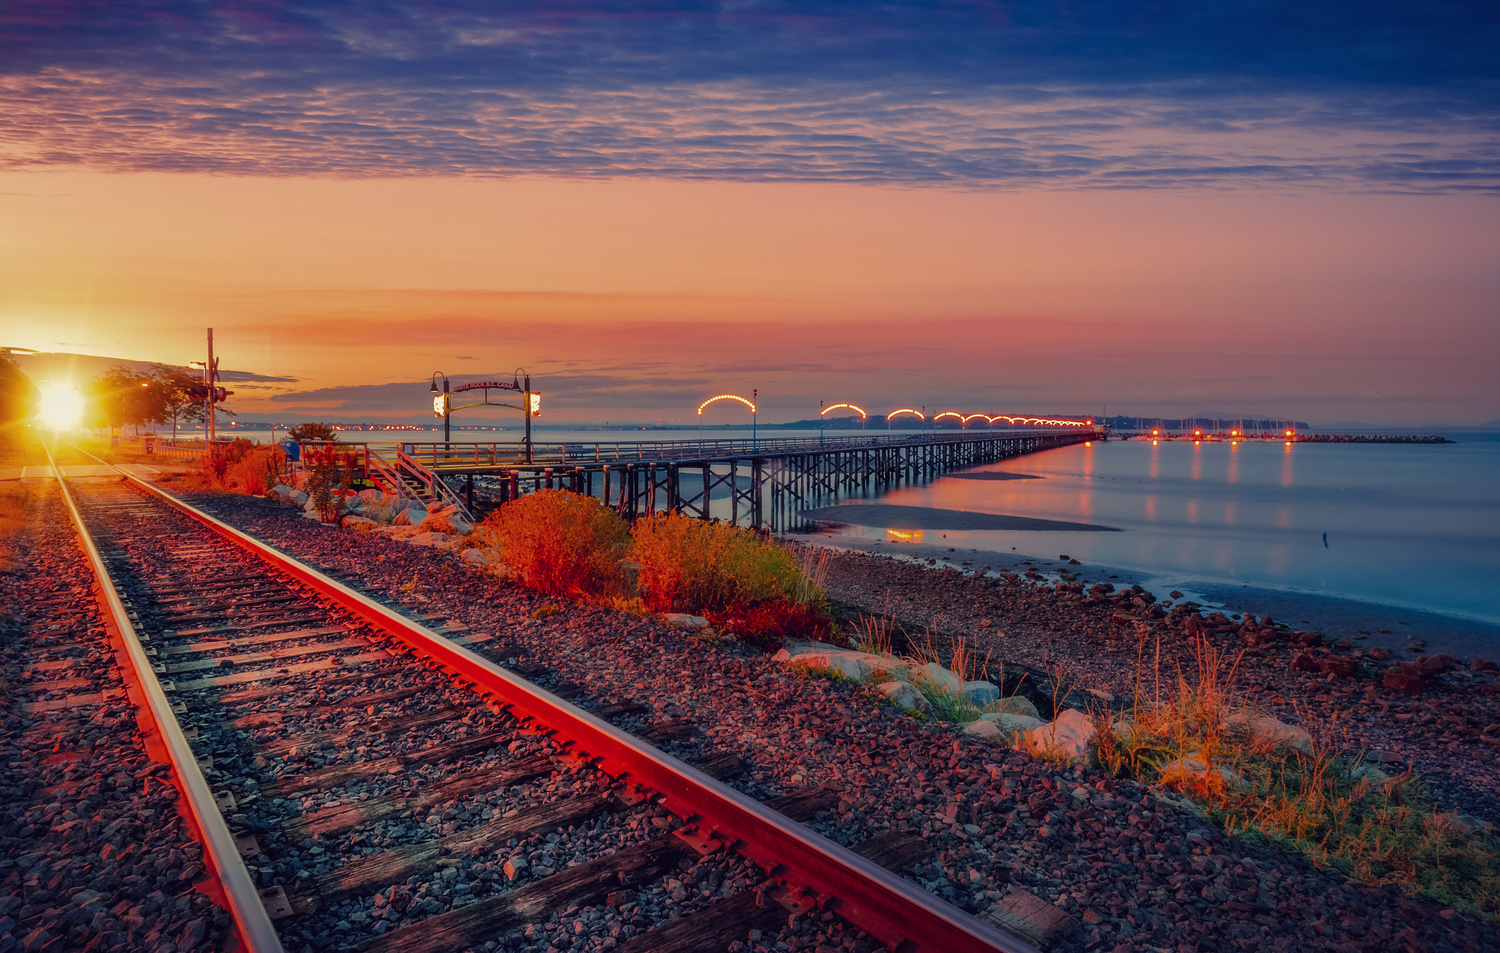 On The Rail by Alex Hill